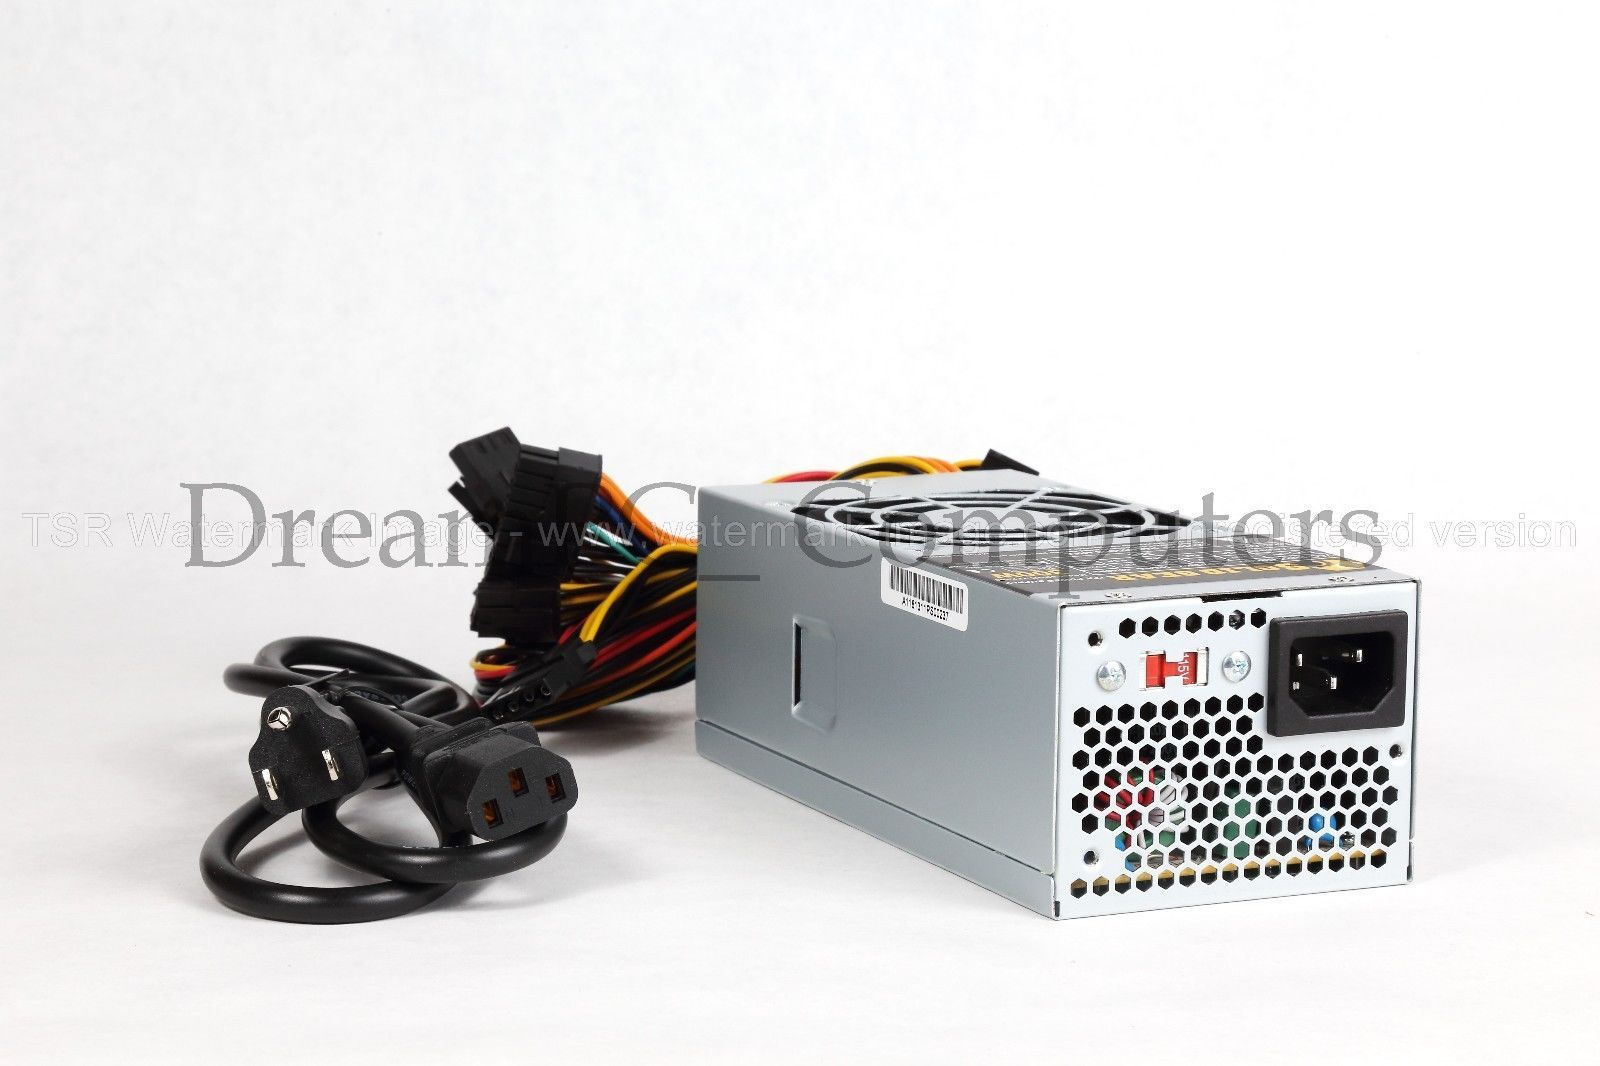 New PC Power Supply Upgrade for Bestec FLX-250F1-L Slimline SFF Computer - $48.95